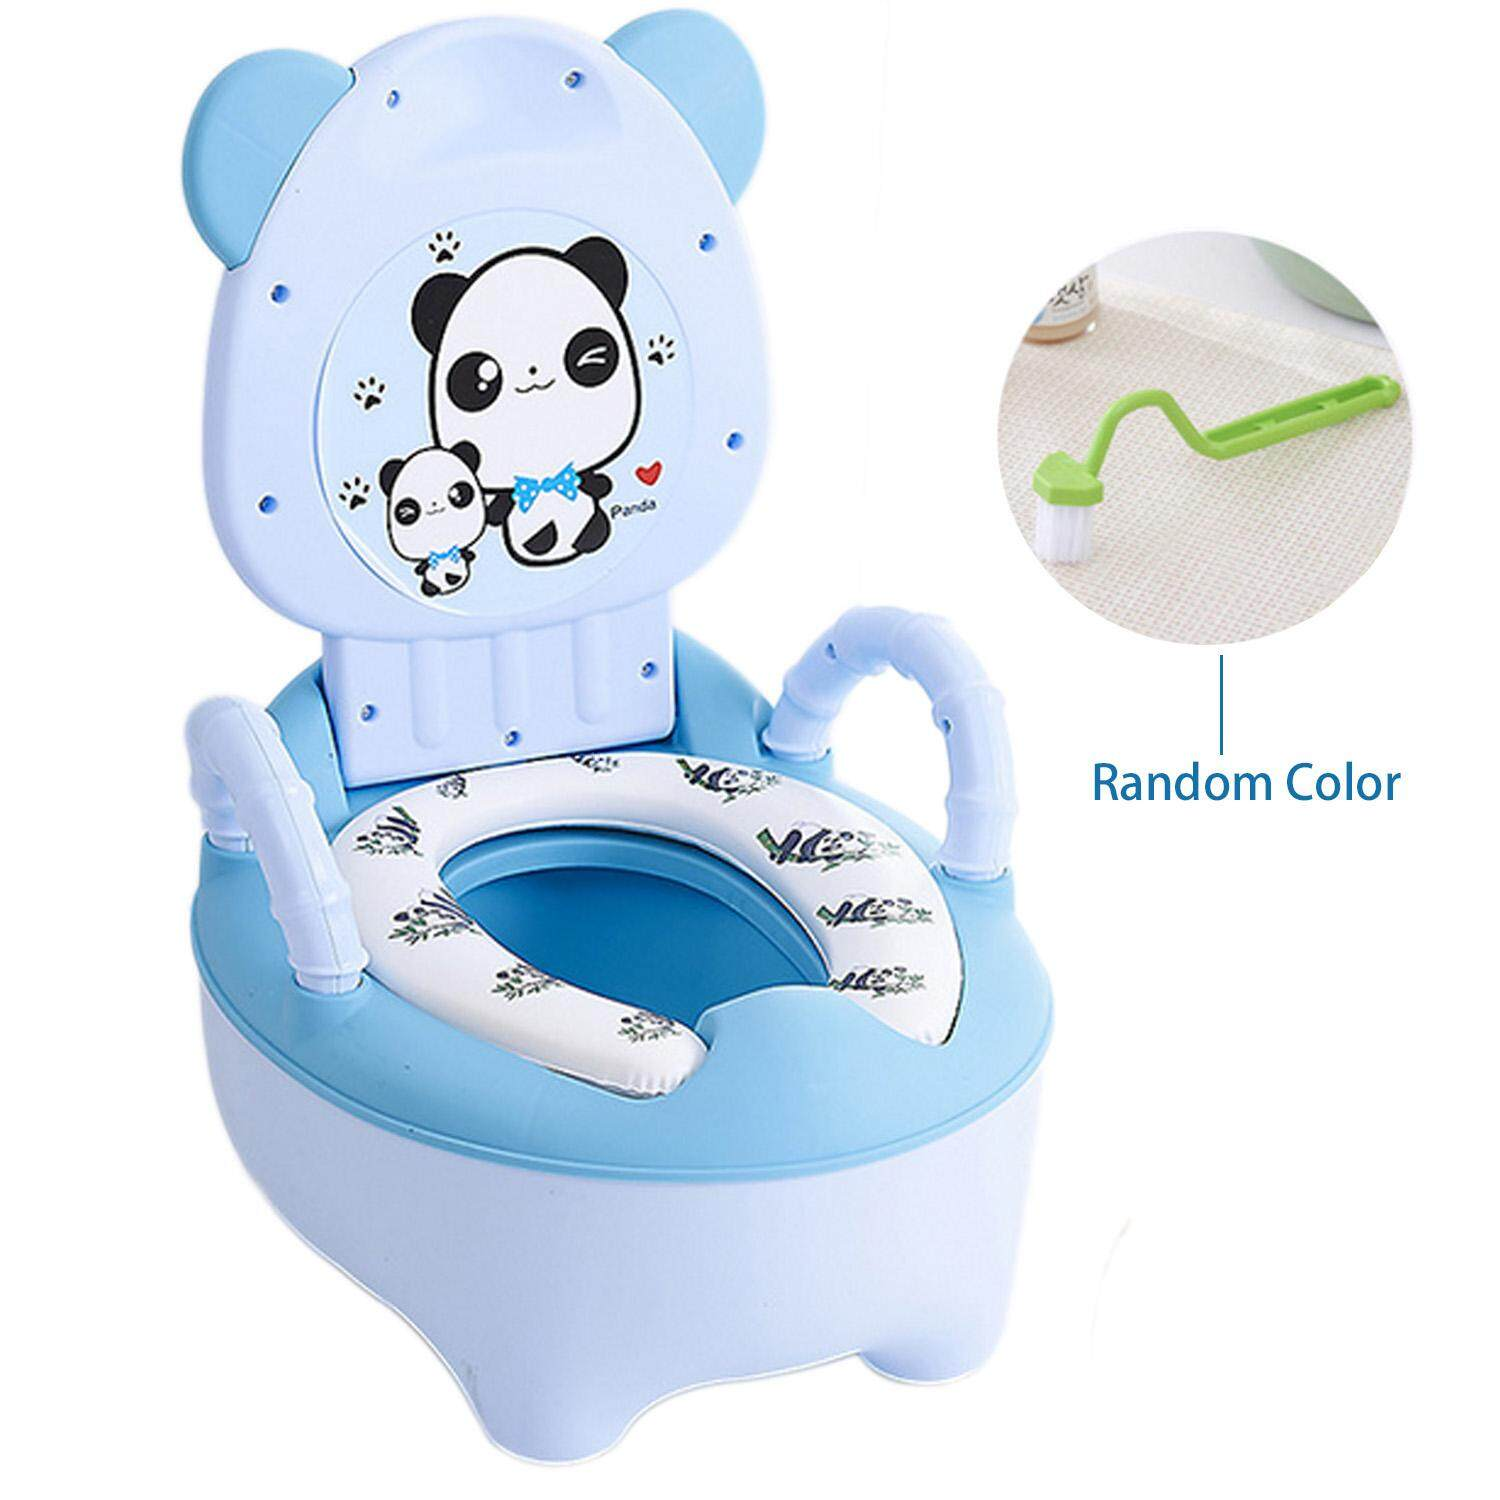 Cute Cartoon Multi Functional Drawer Style Kids Baby Potty Chair With Handrails Soft Cushion Safe Kids - Intl By Elek.